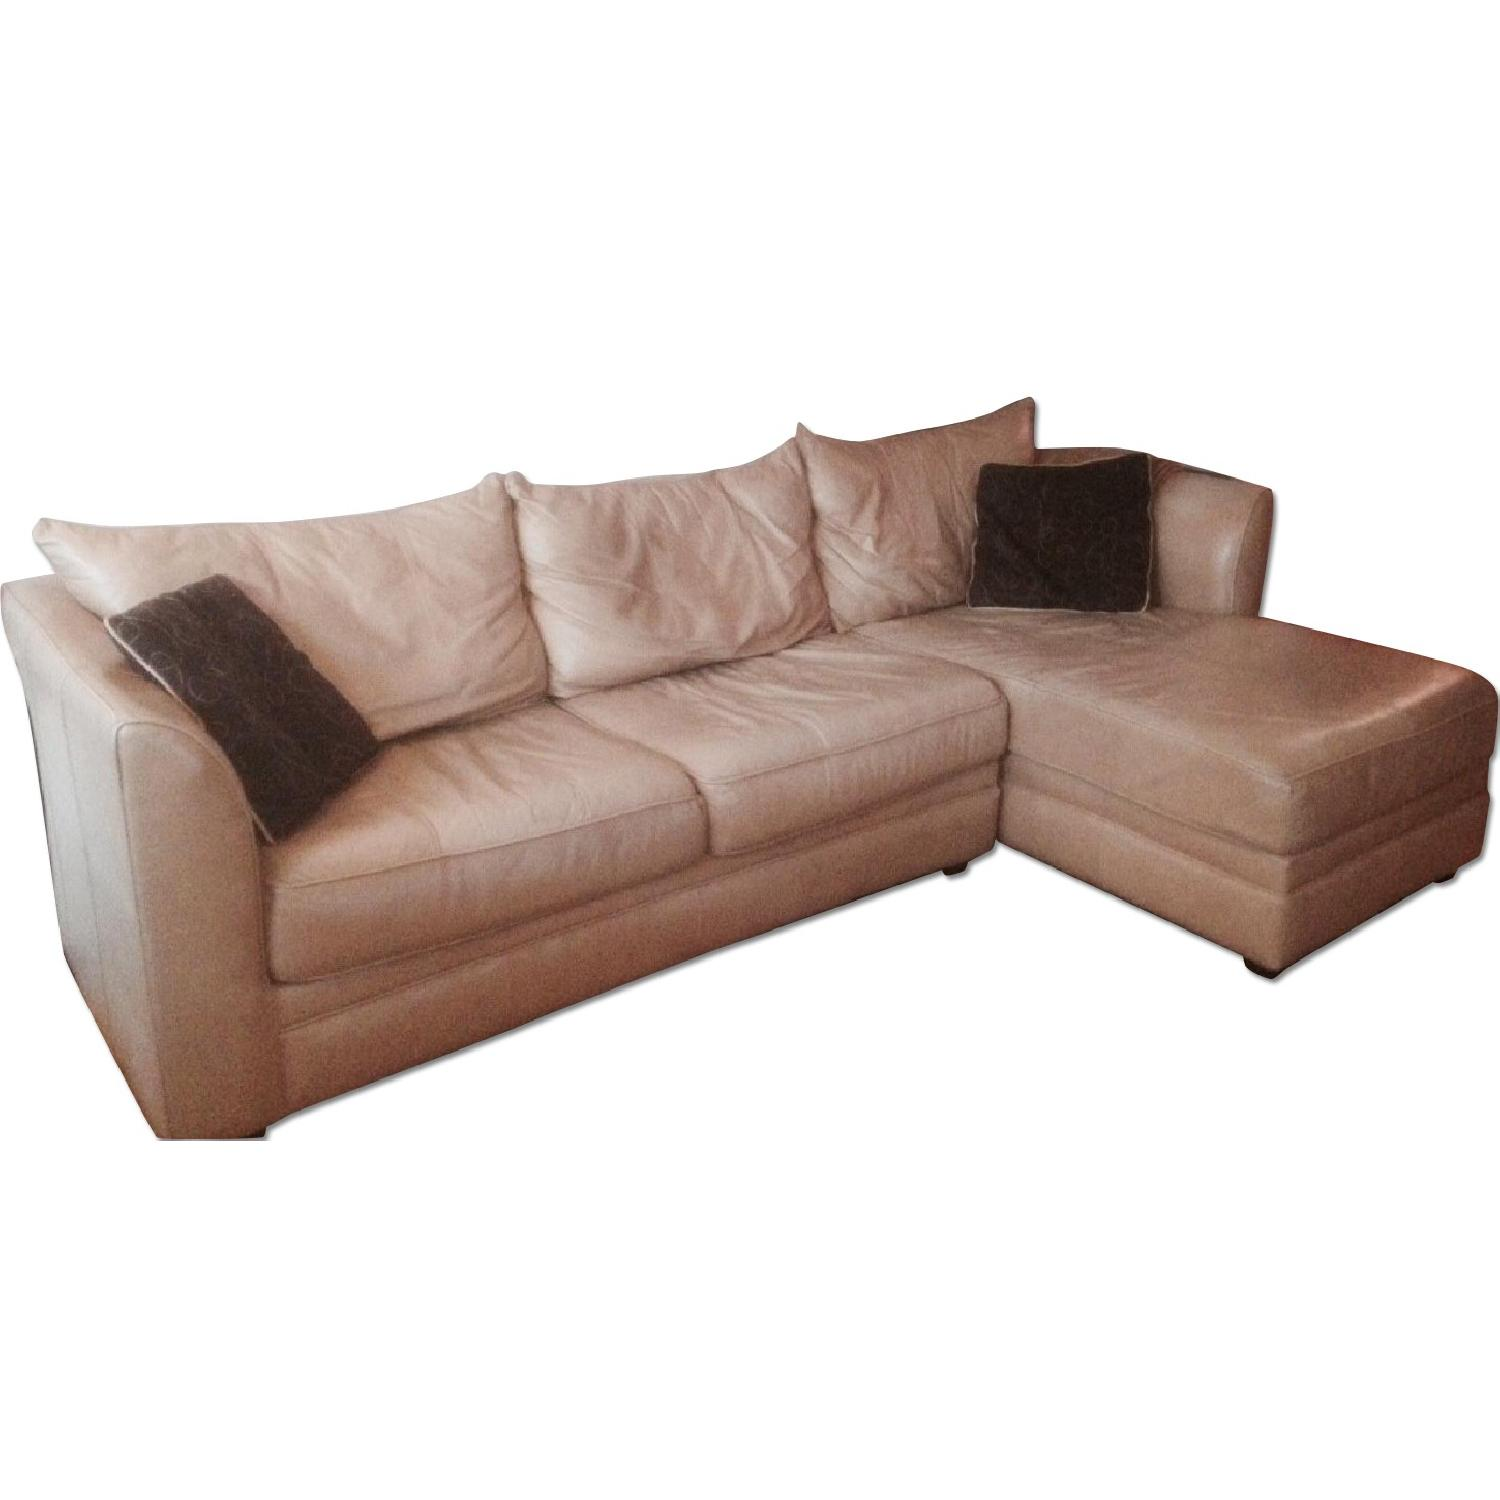 jennifer convertibles leather reclining sofa square wooden feet used sleeper sofas for sale in nyc aptdeco